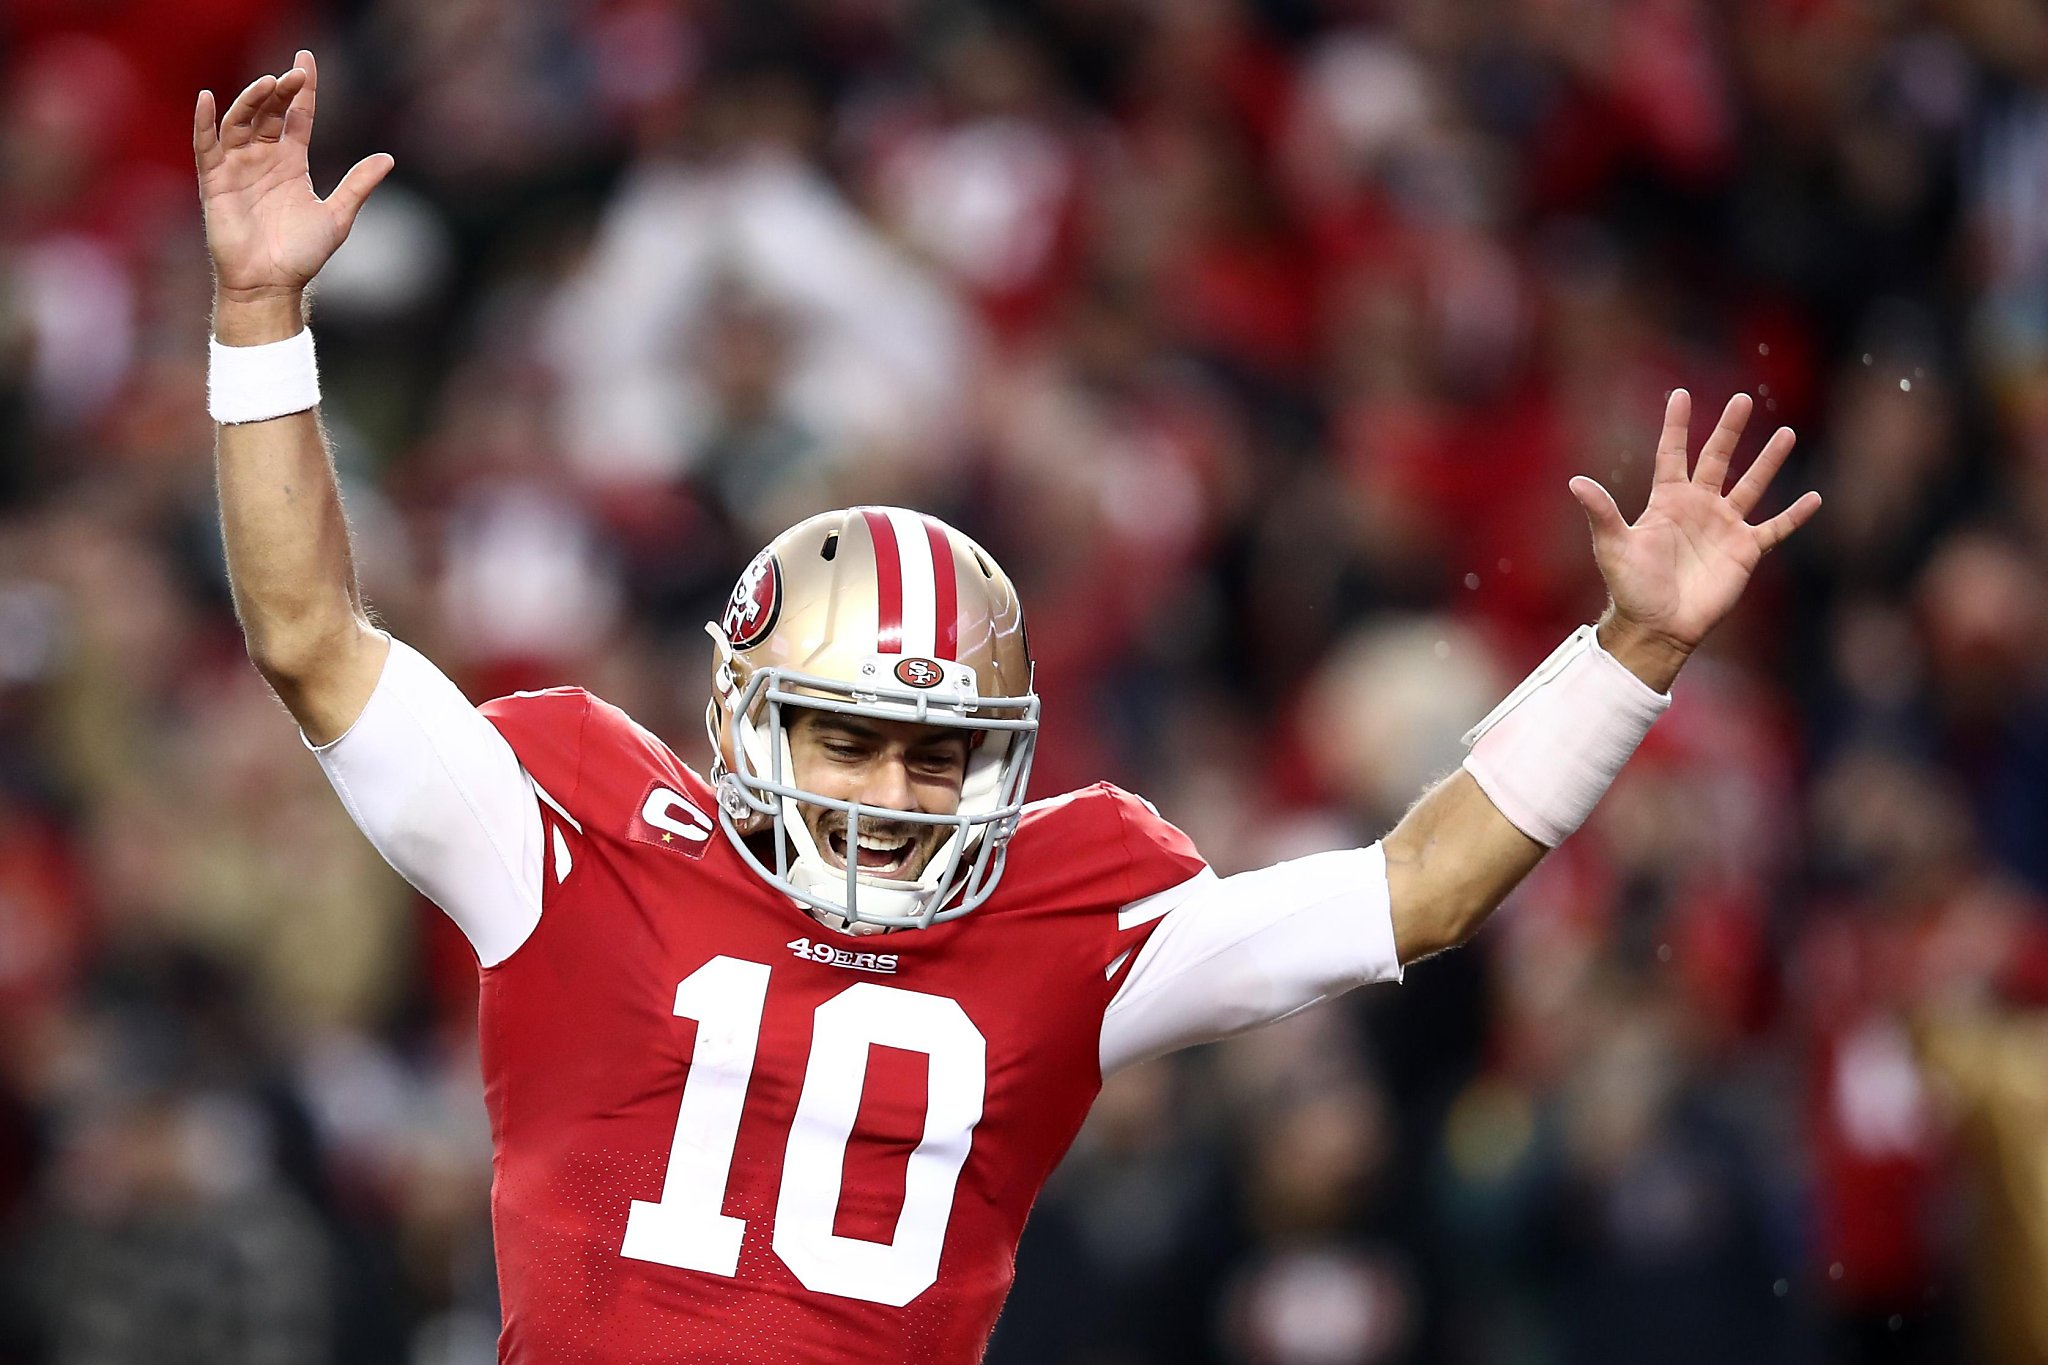 One man's NFL QB TikTok is blowing up, and it features a funny 'Jimmy Garoppolo' cameo